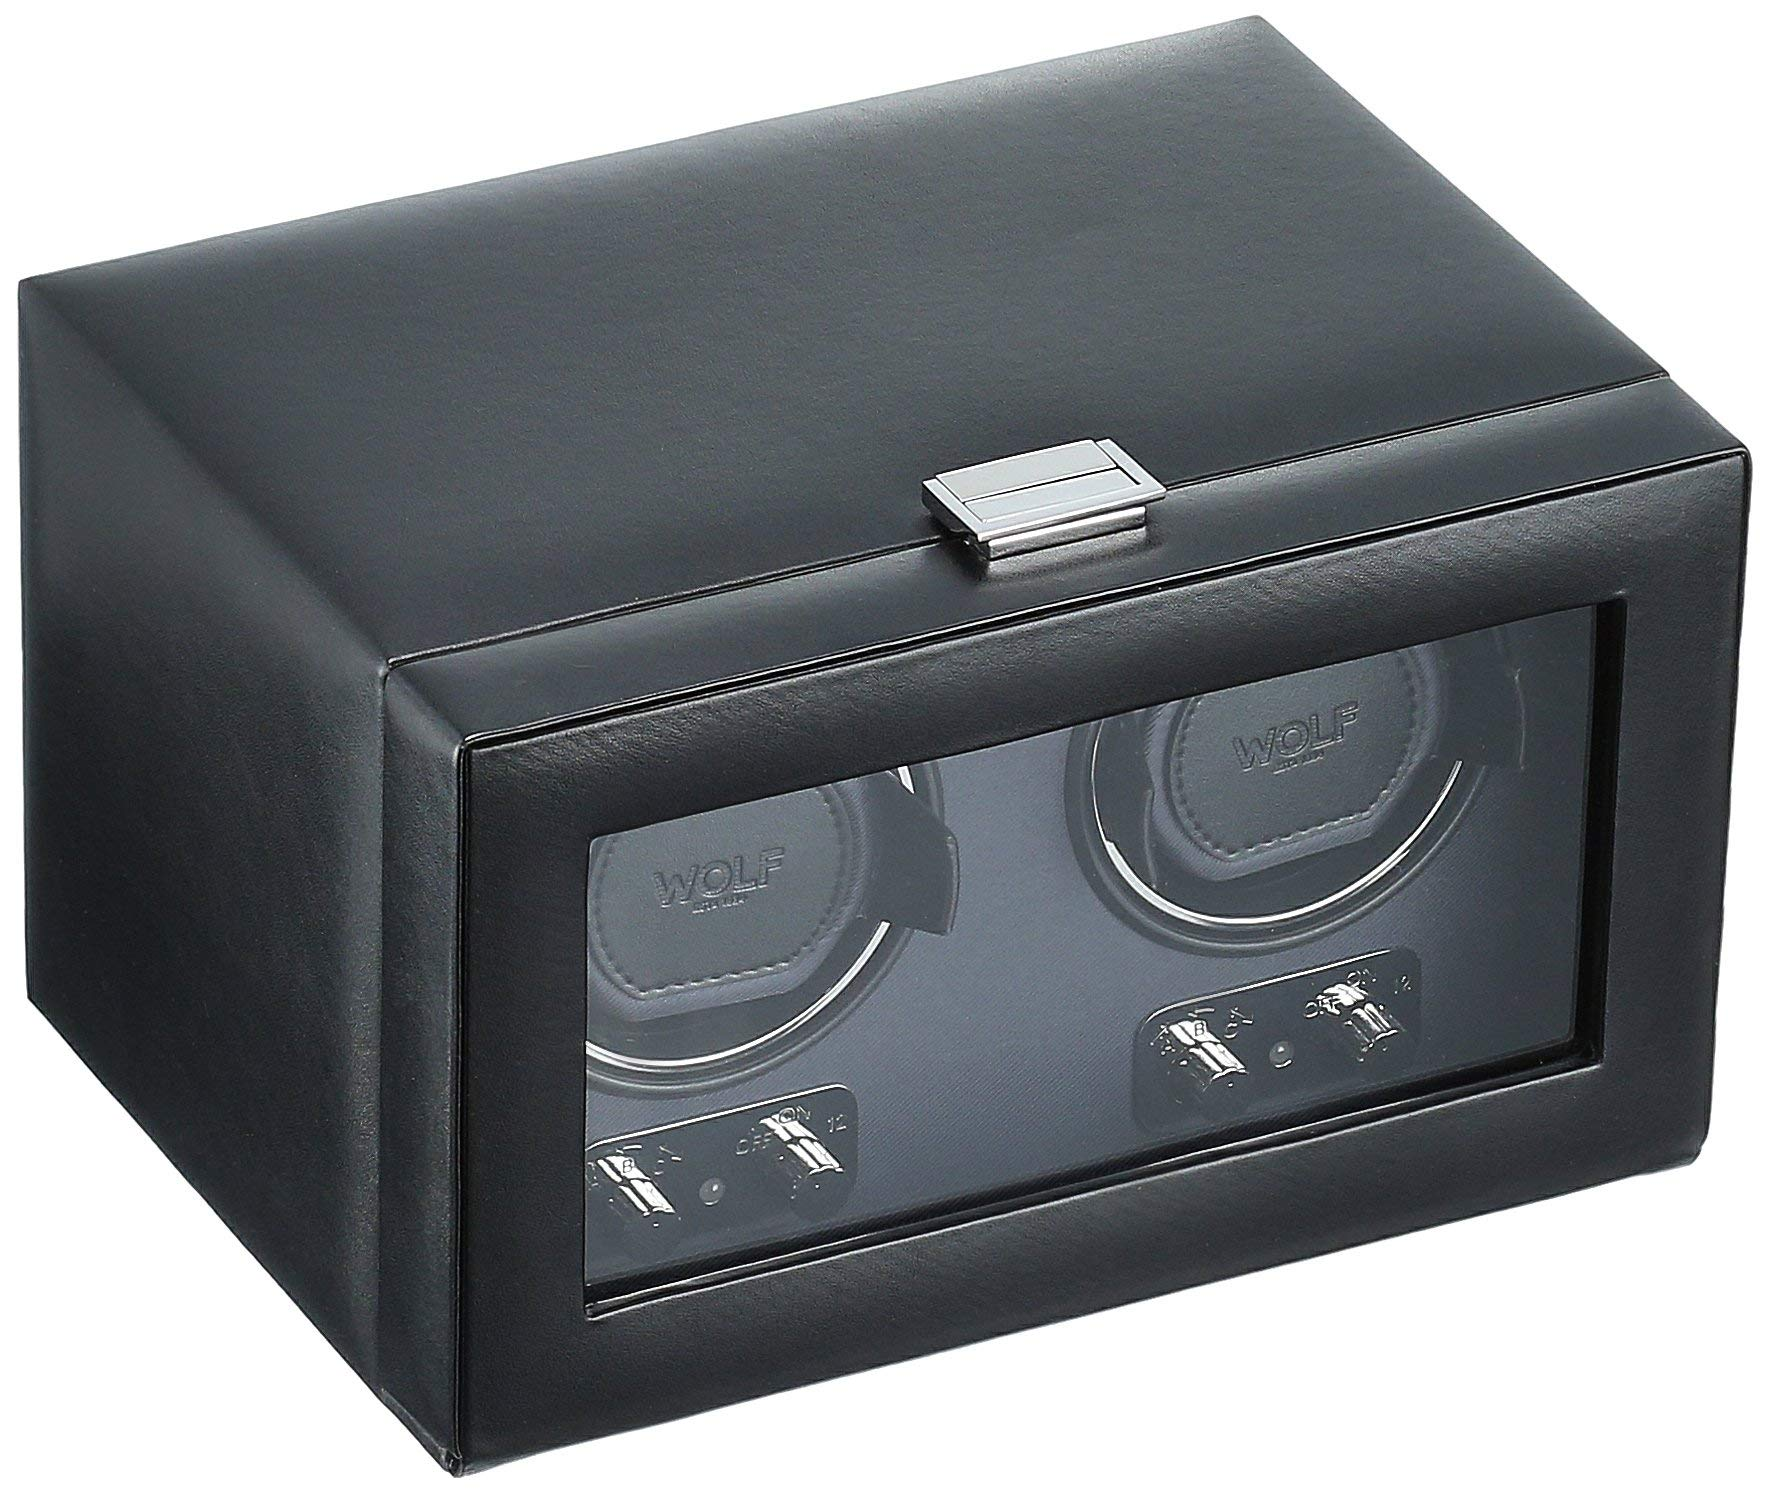 WOLF 270102 Heritage Double Watch Winder with Cover, Black by WOLF